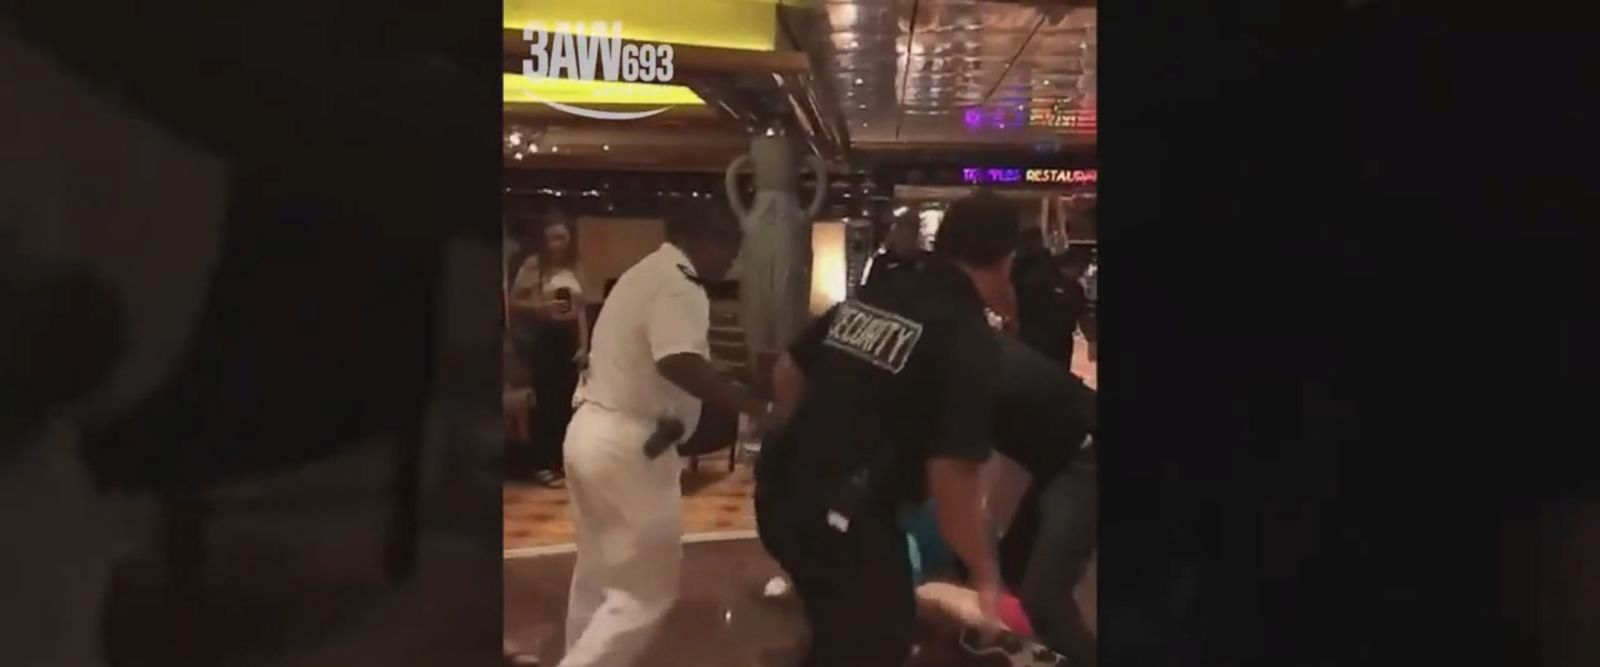 VIDEO: Authorities probing possible criminal charges in Carnival cruise brawl